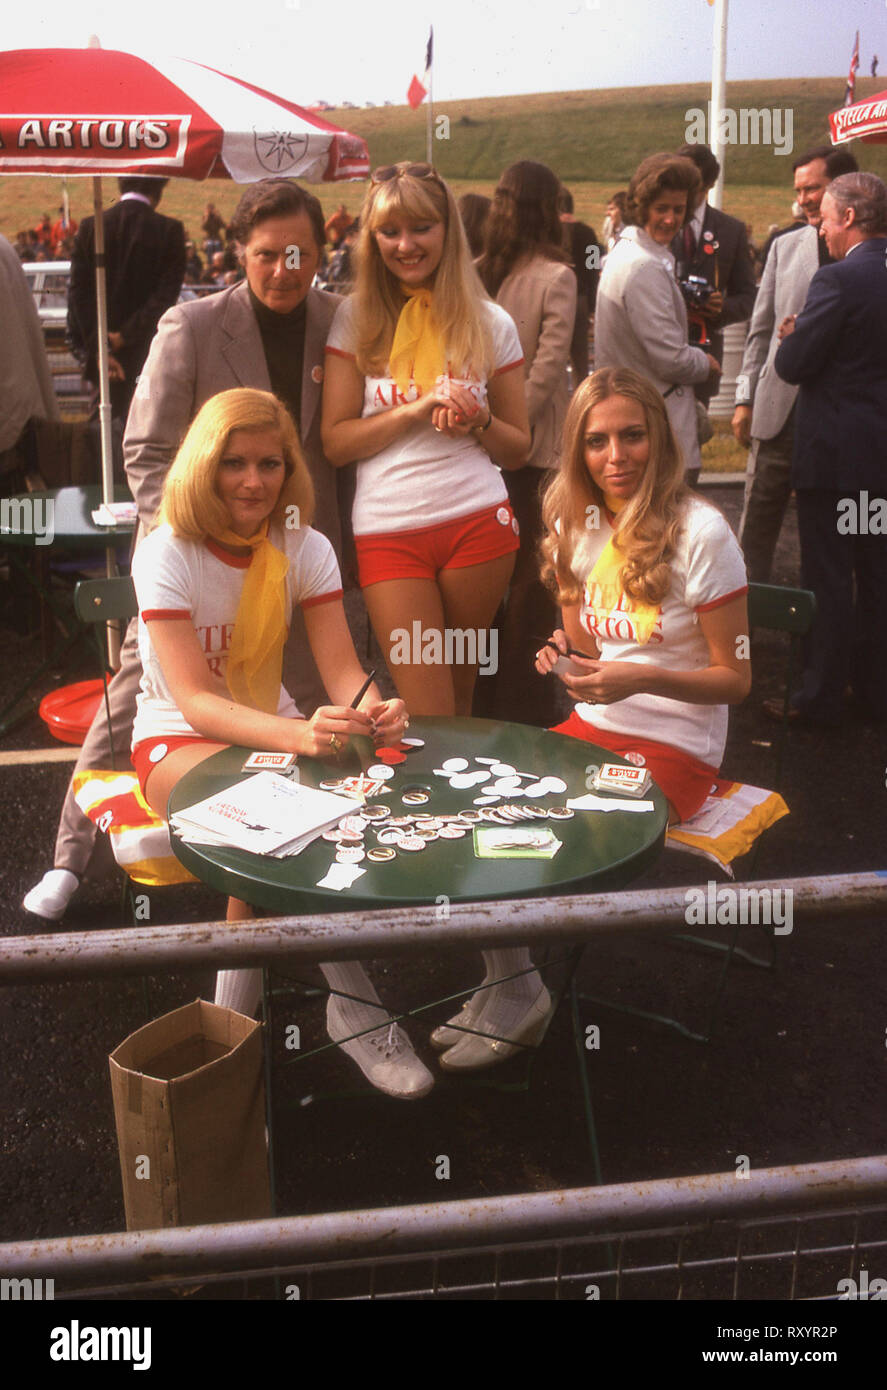 1974, sponsor's promotional girls at the 1974 Tour de France cycle race, British stage, Plymouth by-pass, England. - Stock Image